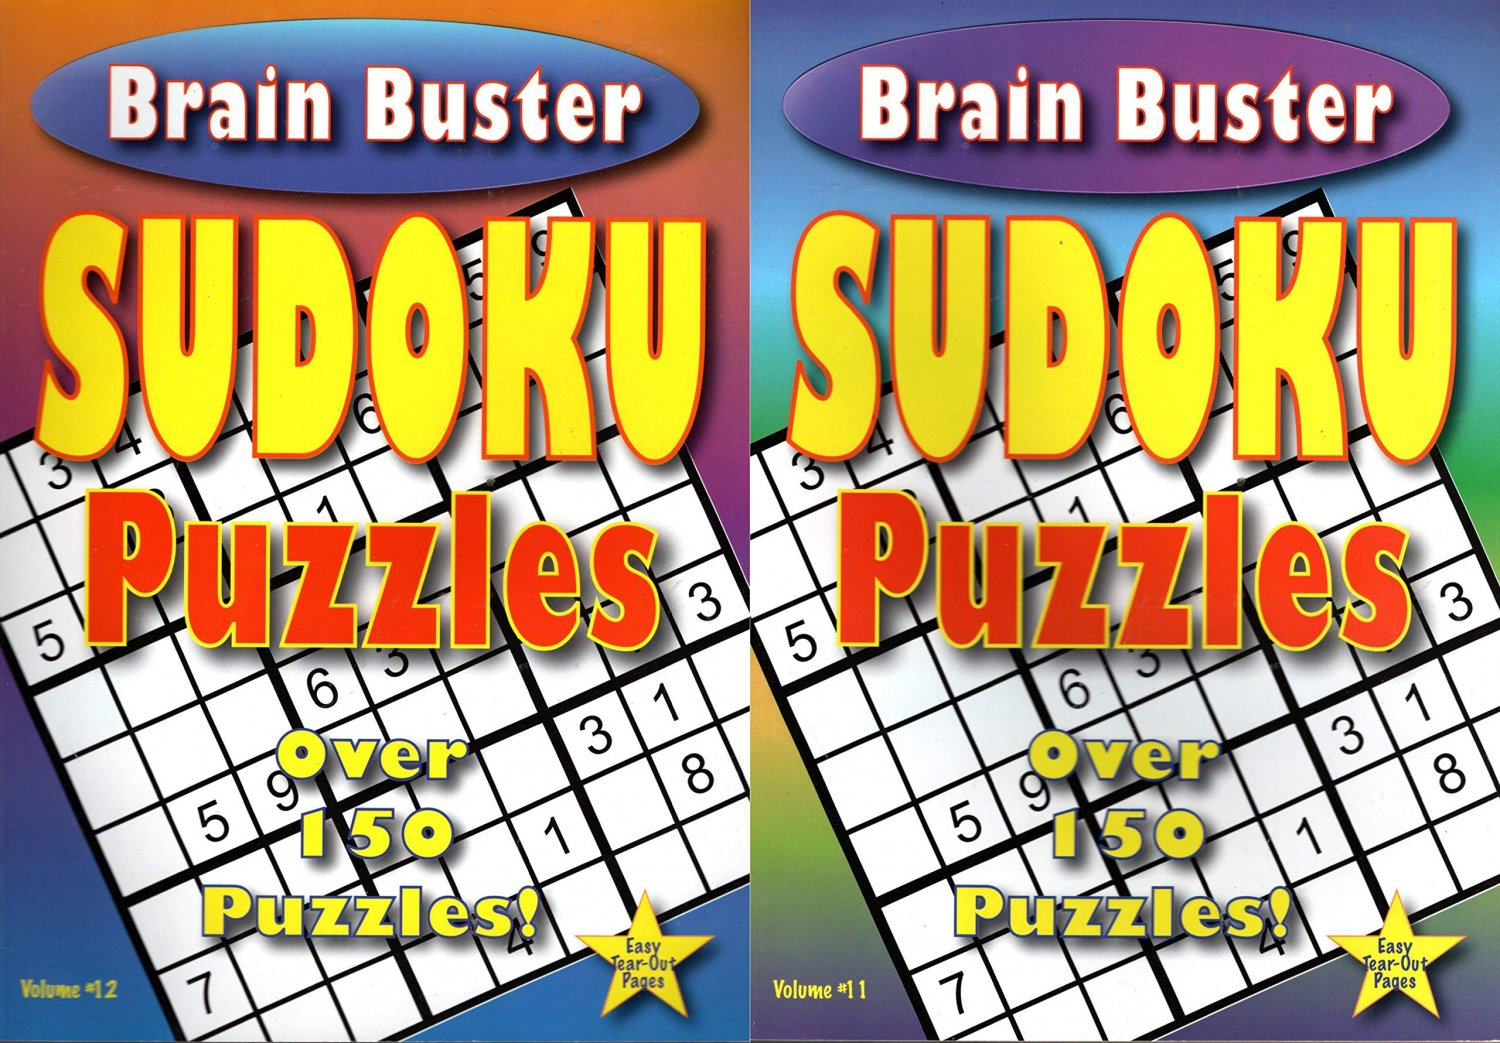 Brain Buster - Sudoku Puzzle - Easy - Medium - Expert - Over 150 Puzzles - Vol.11 - 12 (Set of 2)